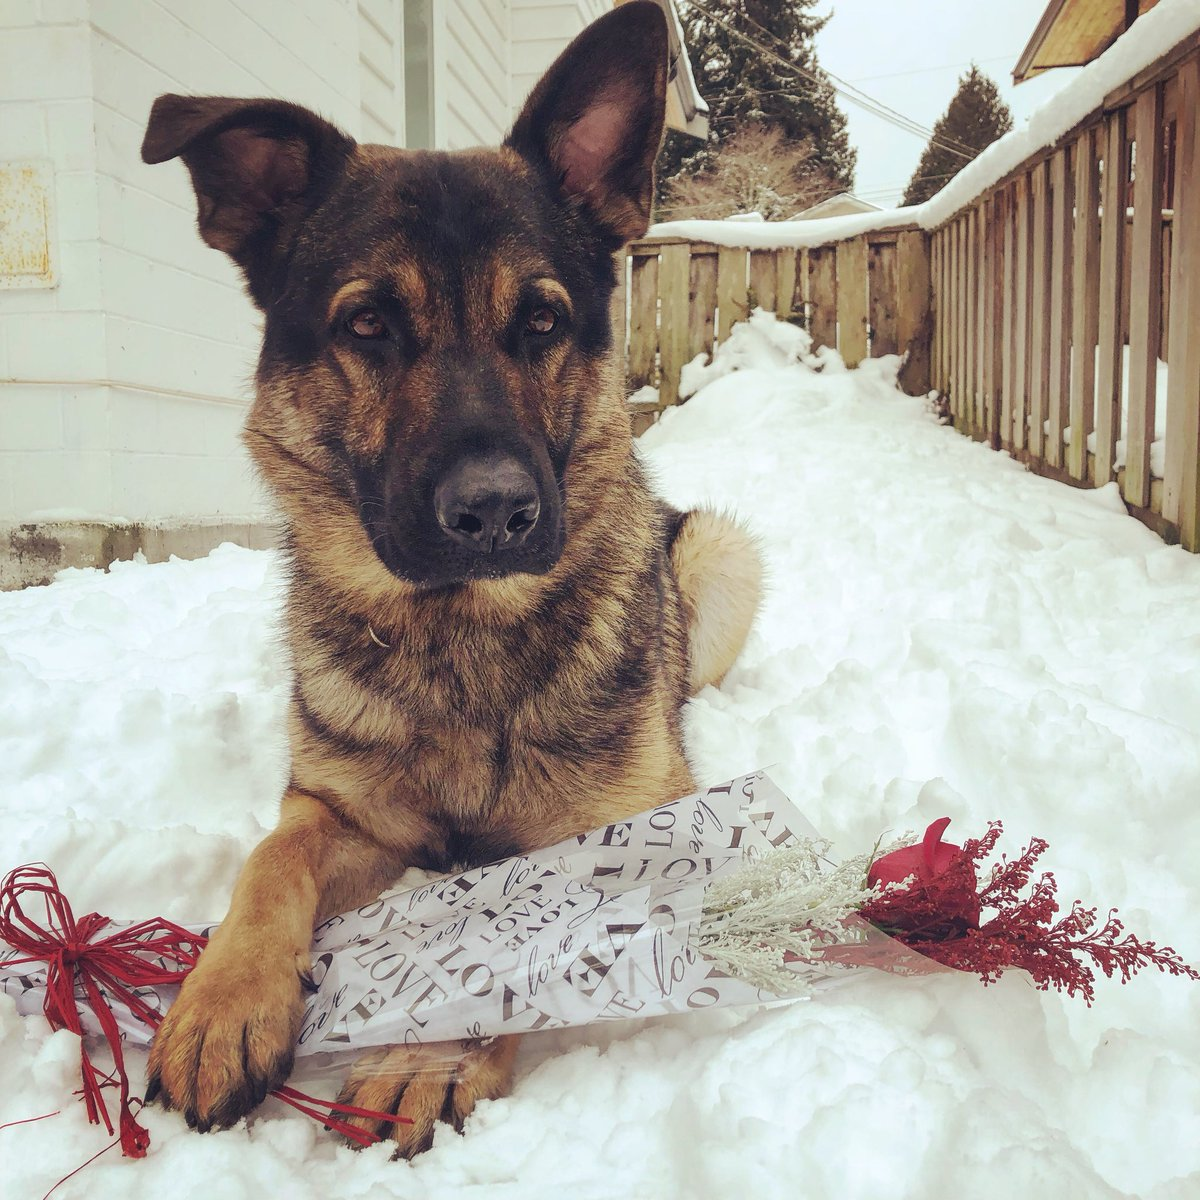 PSD Hank wants to know if you will be his Valentine ? all our four legged VPD PSD's would like to wish you a #HappyValentinesDay2019    #VPD #VPDCanineUnit #workingdogs #gsd <br>http://pic.twitter.com/KmZah2rbQR